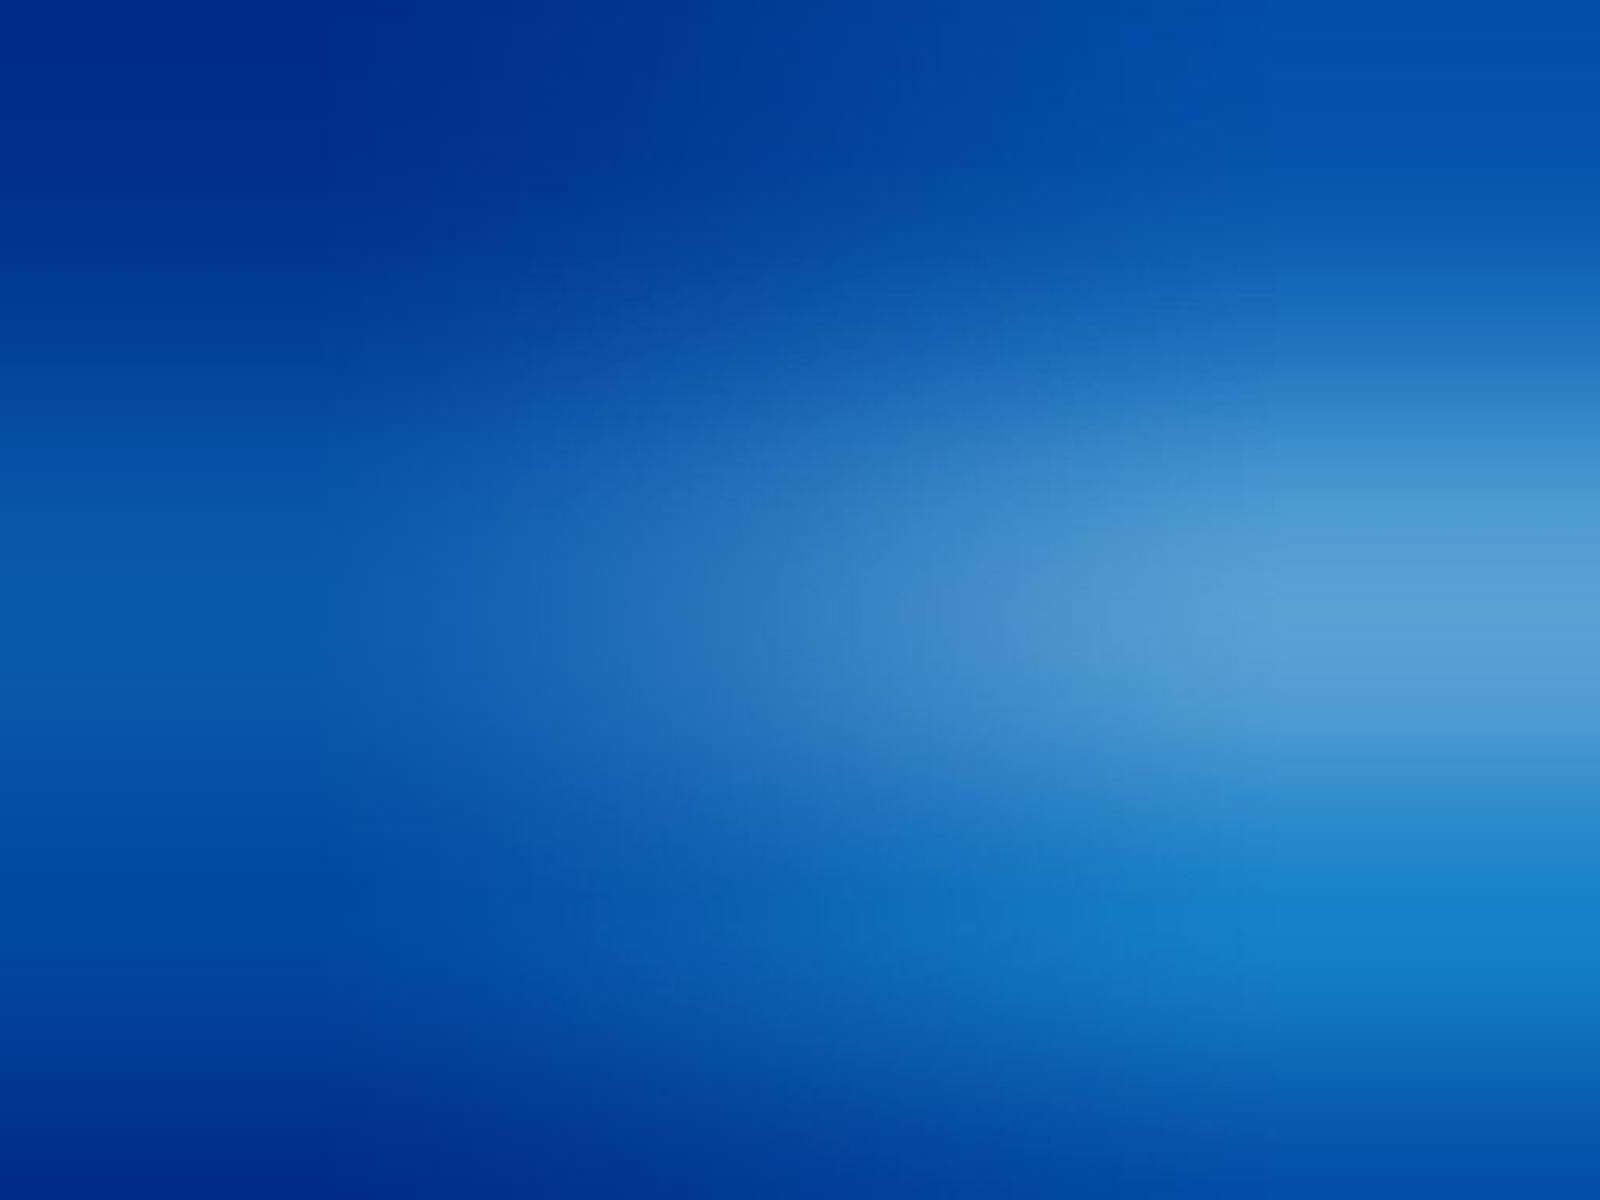 15+ Plain Blue Backgrounds